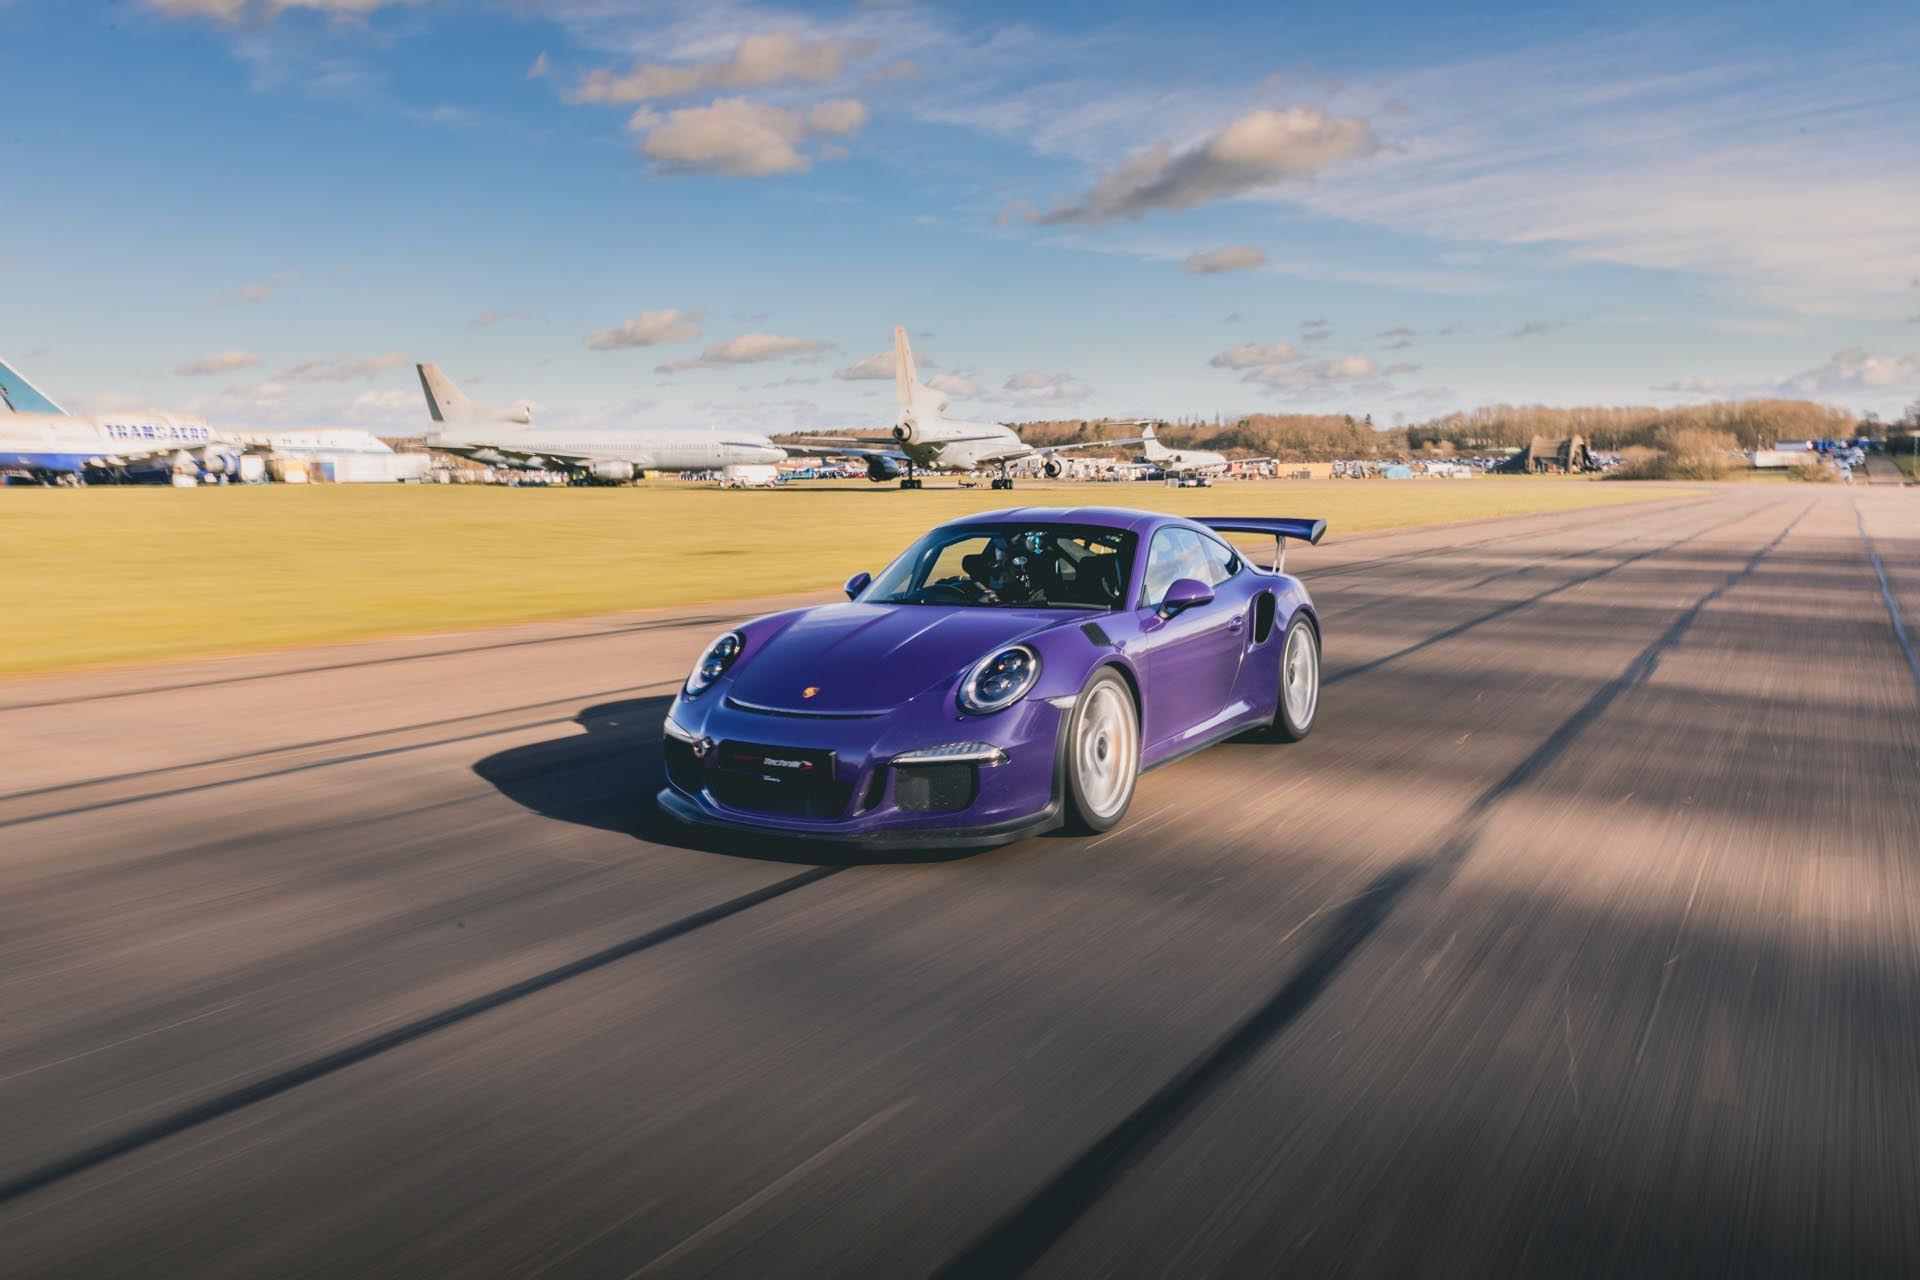 991.1 gt3rs manthey racing on track